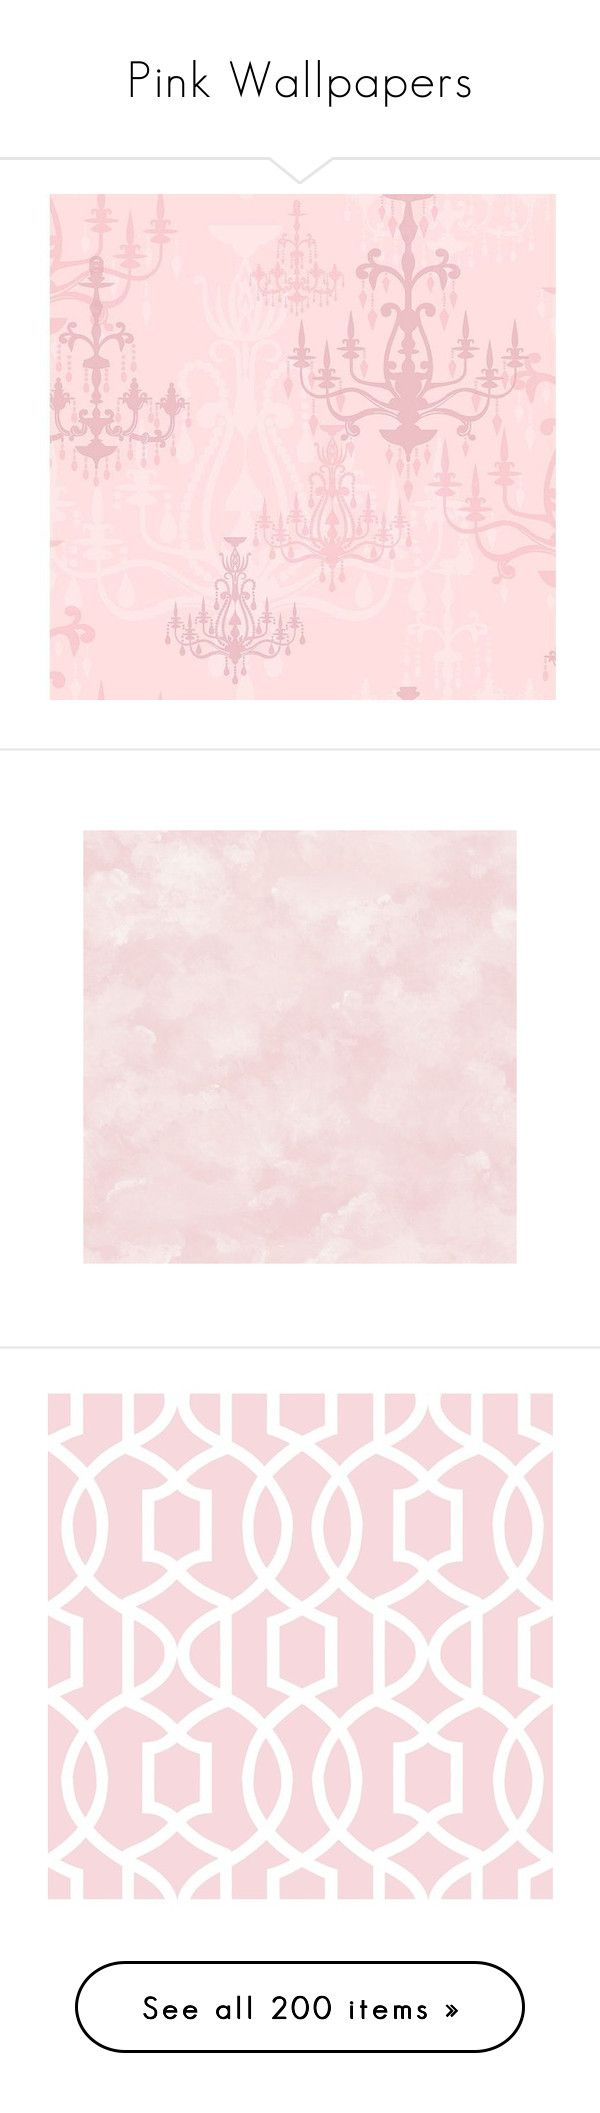 """Pink Wallpapers"" by lailoooo ❤ liked on Polyvore featuring home, home decor, wallpaper, backgrounds, borders, picture frame, peelable wallpaper, removable wallpaper, light purple wallpaper and border wallpaper"